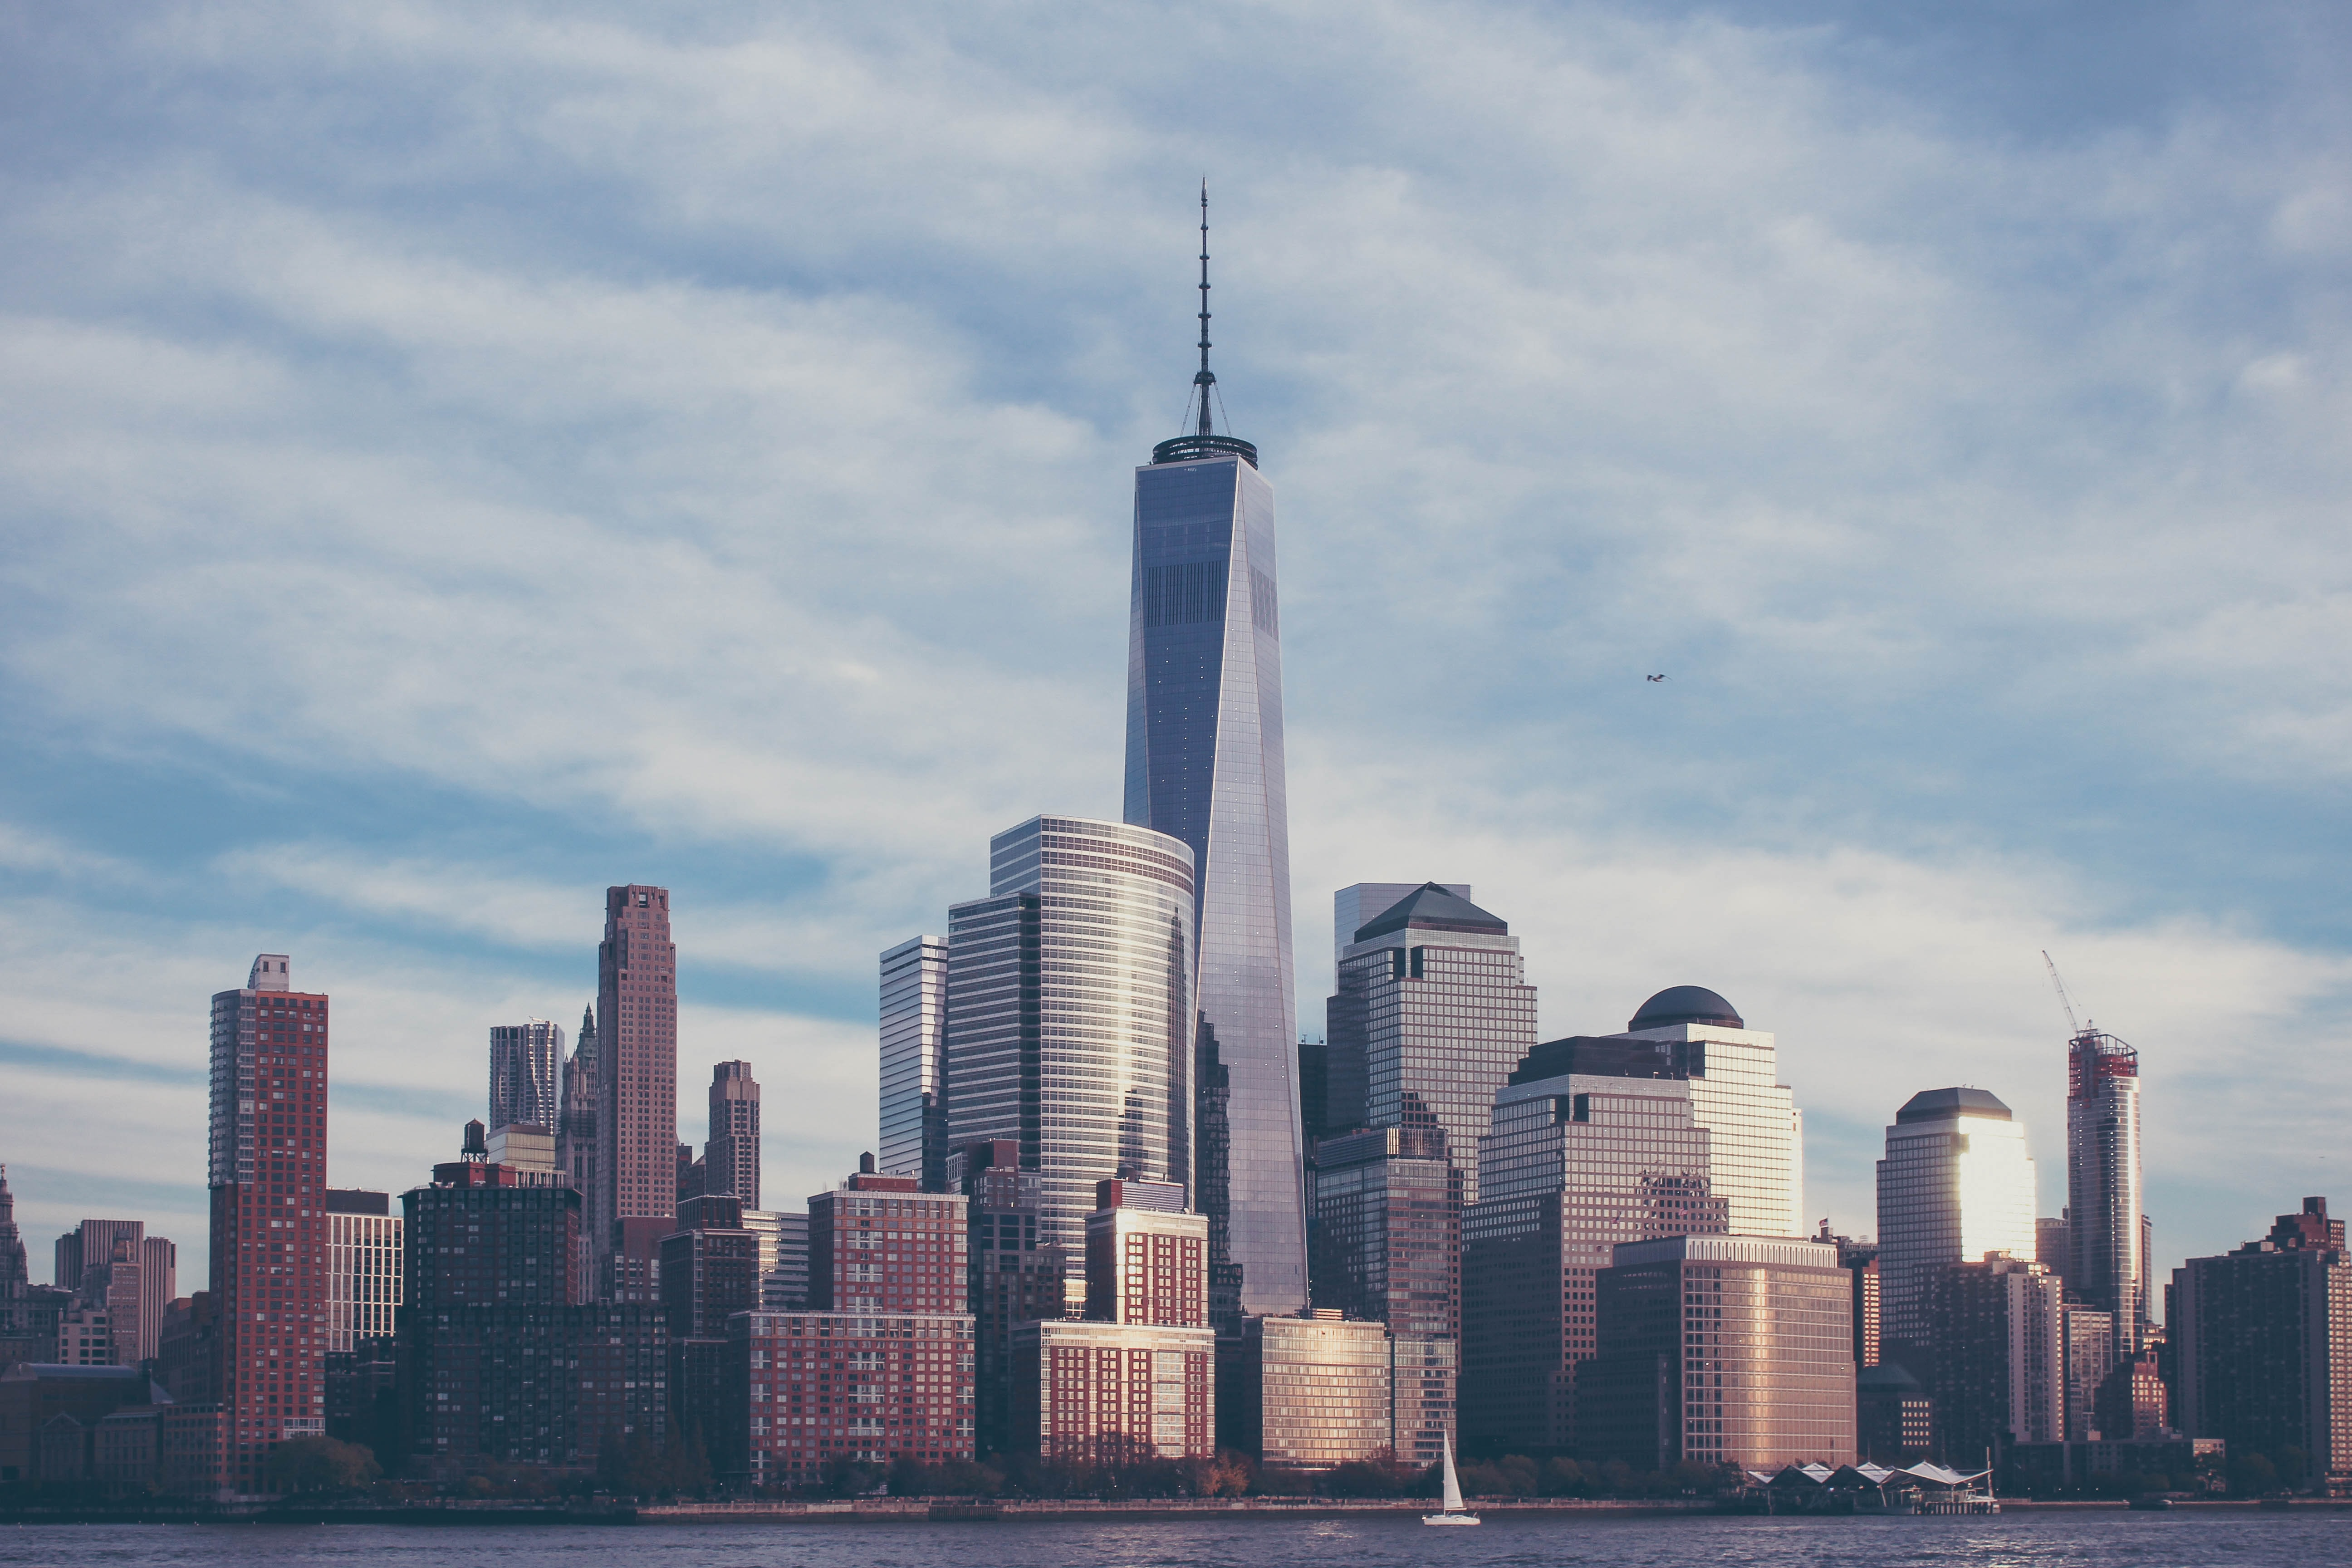 The One World Trade Center towering above other skyscrapers in Lower Manhattan